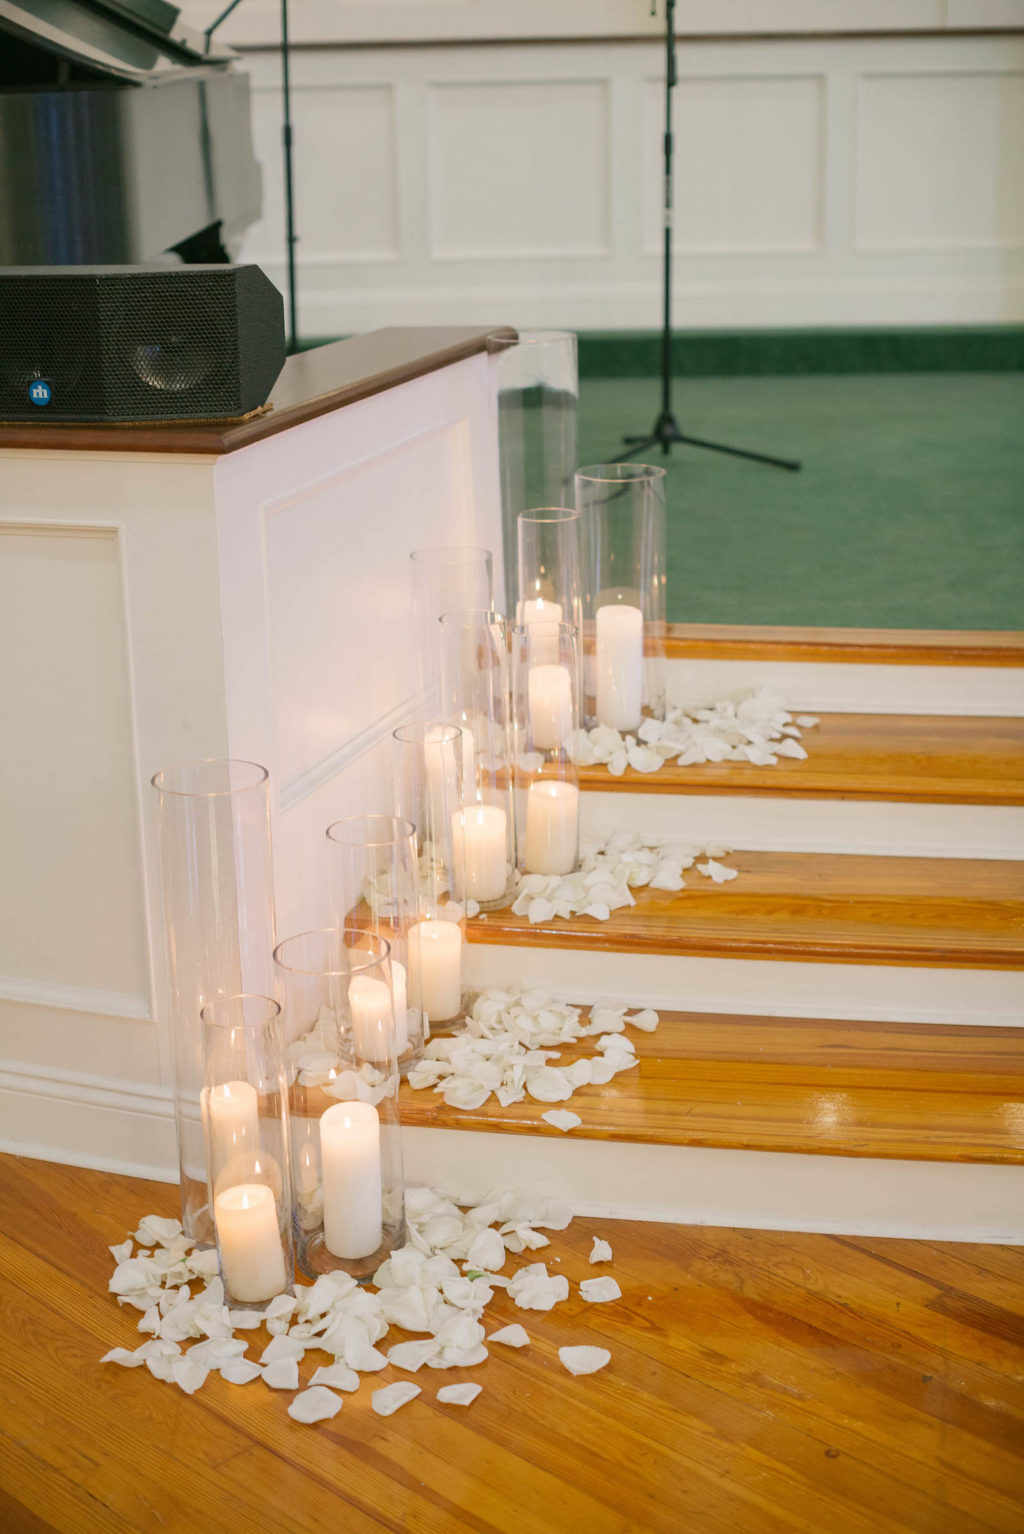 White Flower Petals Lining Church Wedding Aisle | White Candles in Tall Vases Adorning Wedding Aisle | Wedding Ceremony Decor